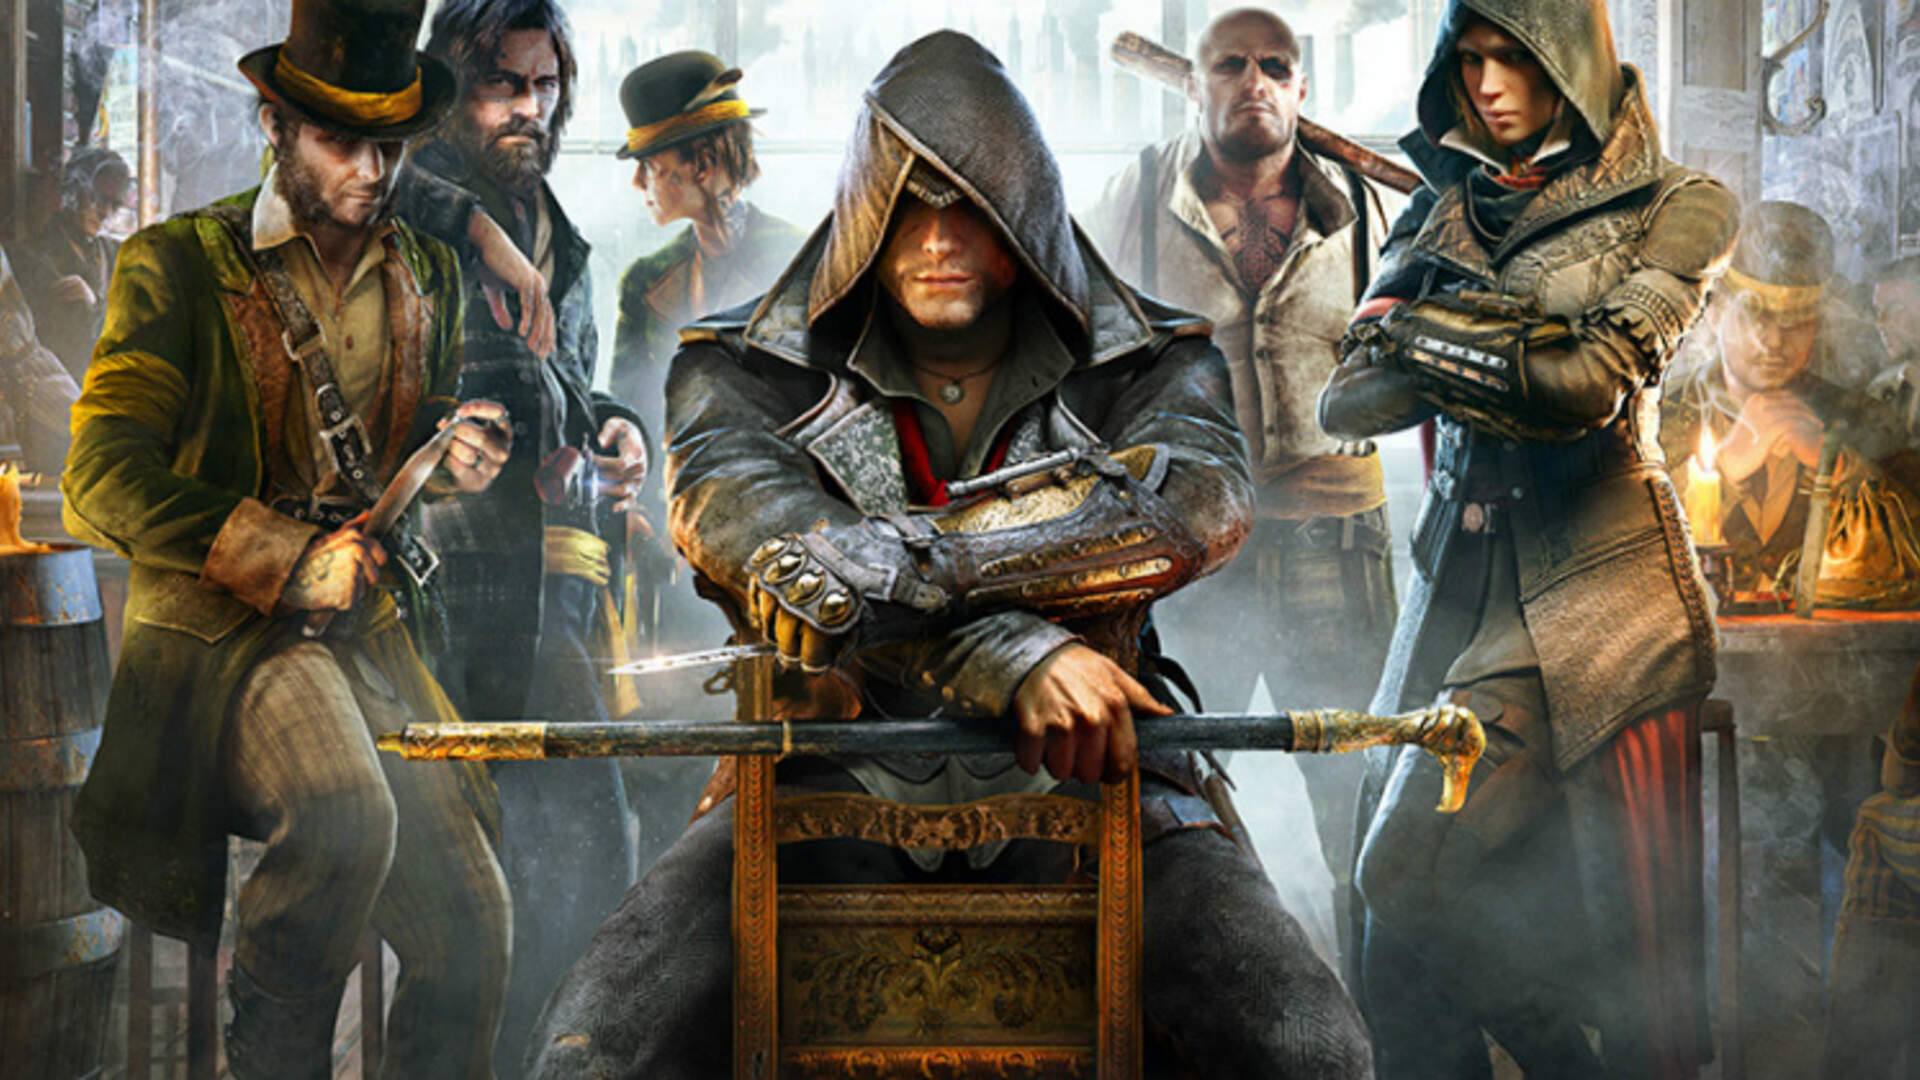 Assassin's Creed Syndicate: Female Assassins and Gang Members, A Step for Equality